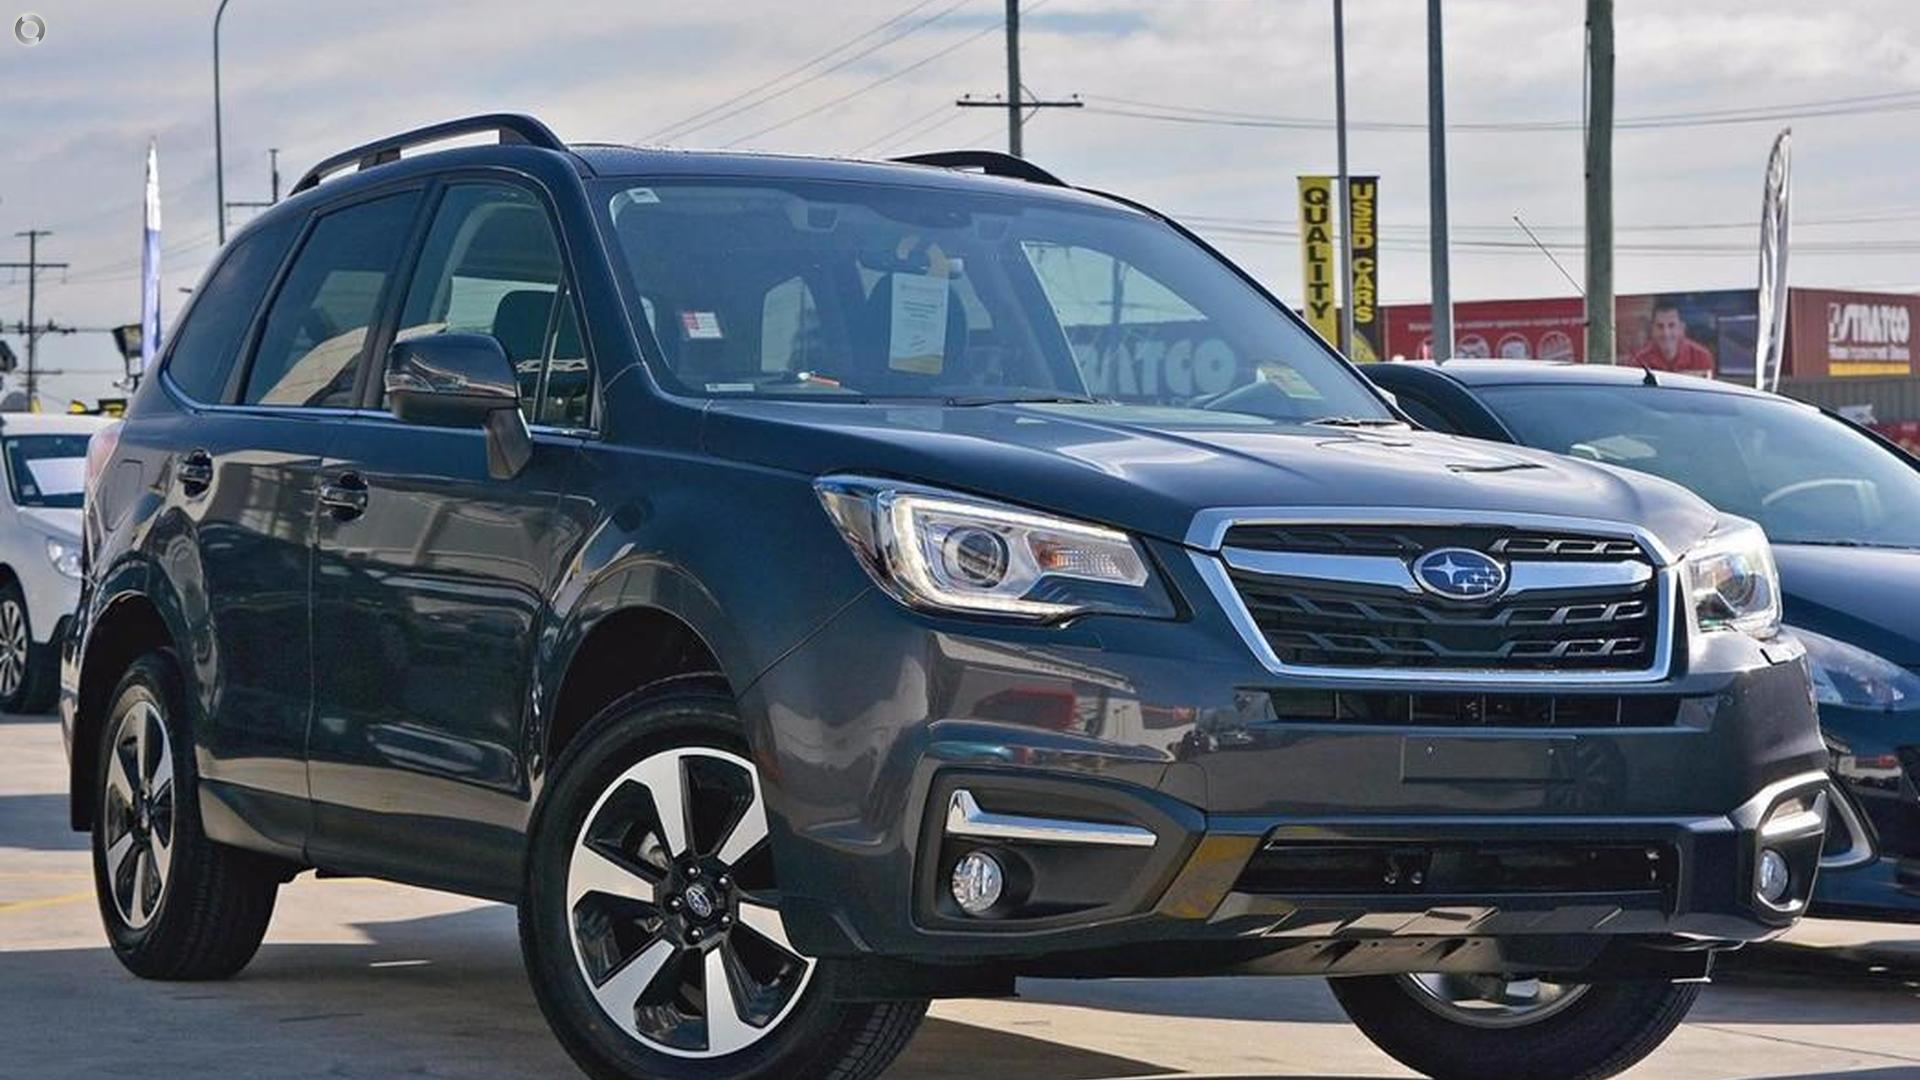 2017 Subaru Forester 2.5i-L Special Edition S4